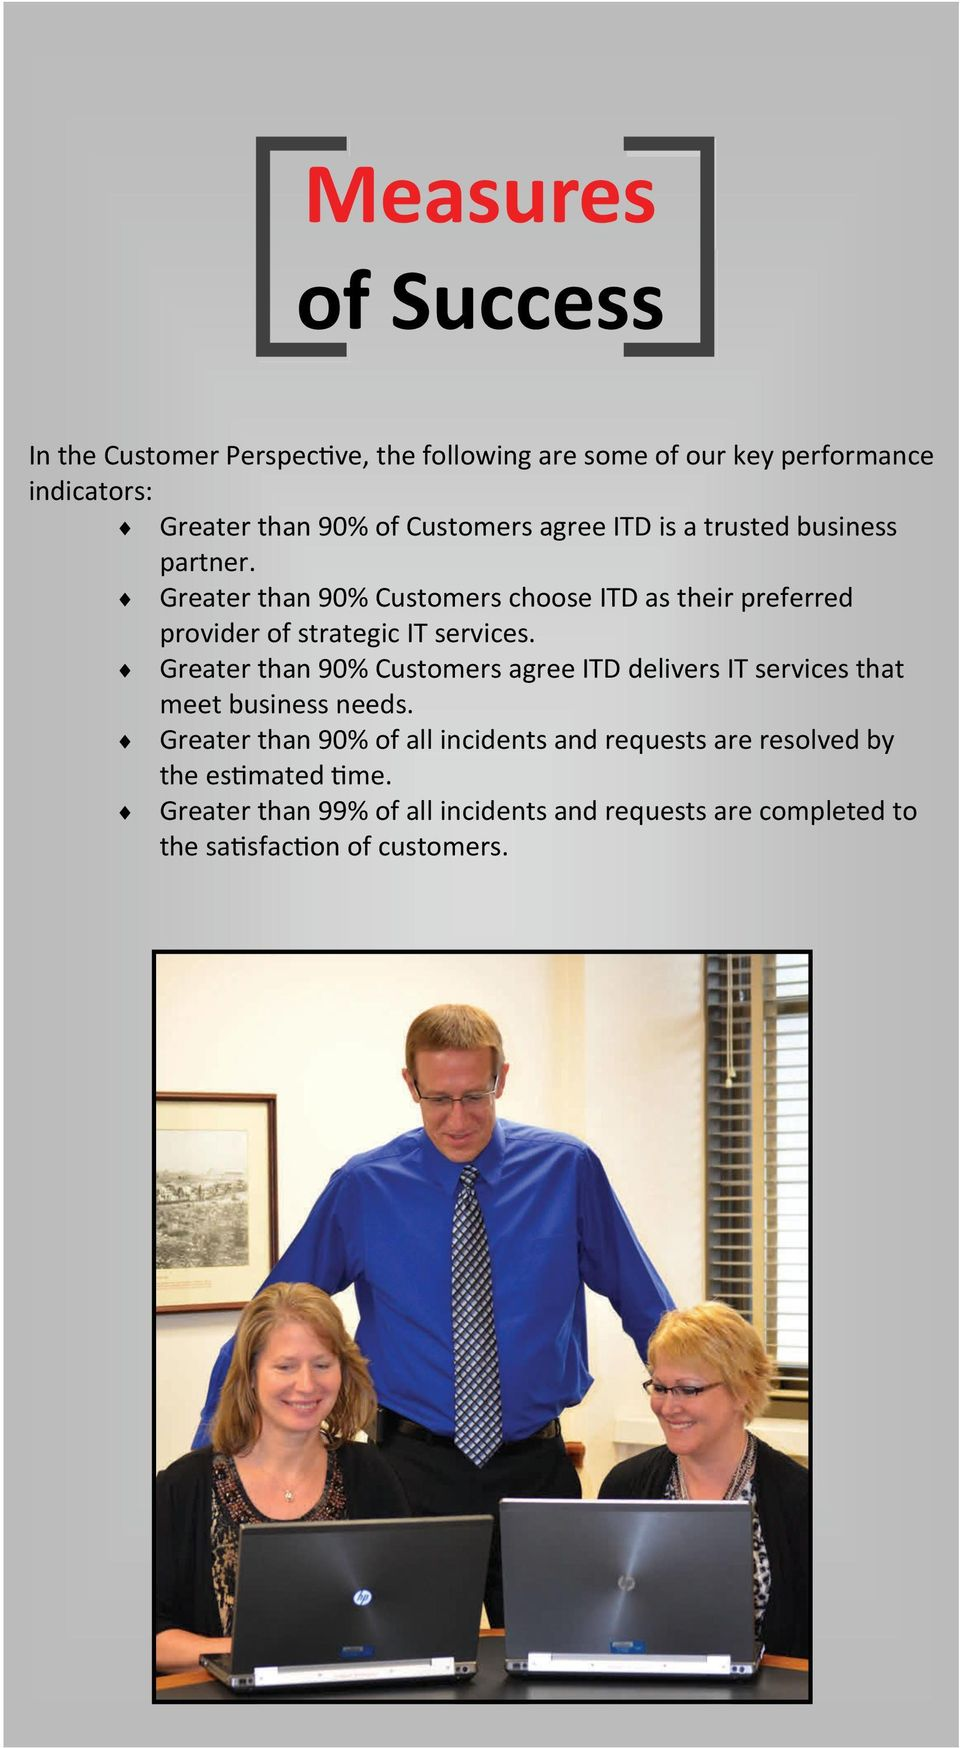 Greater than 90% Customers choose ITD as their preferred provider of strategic IT services.